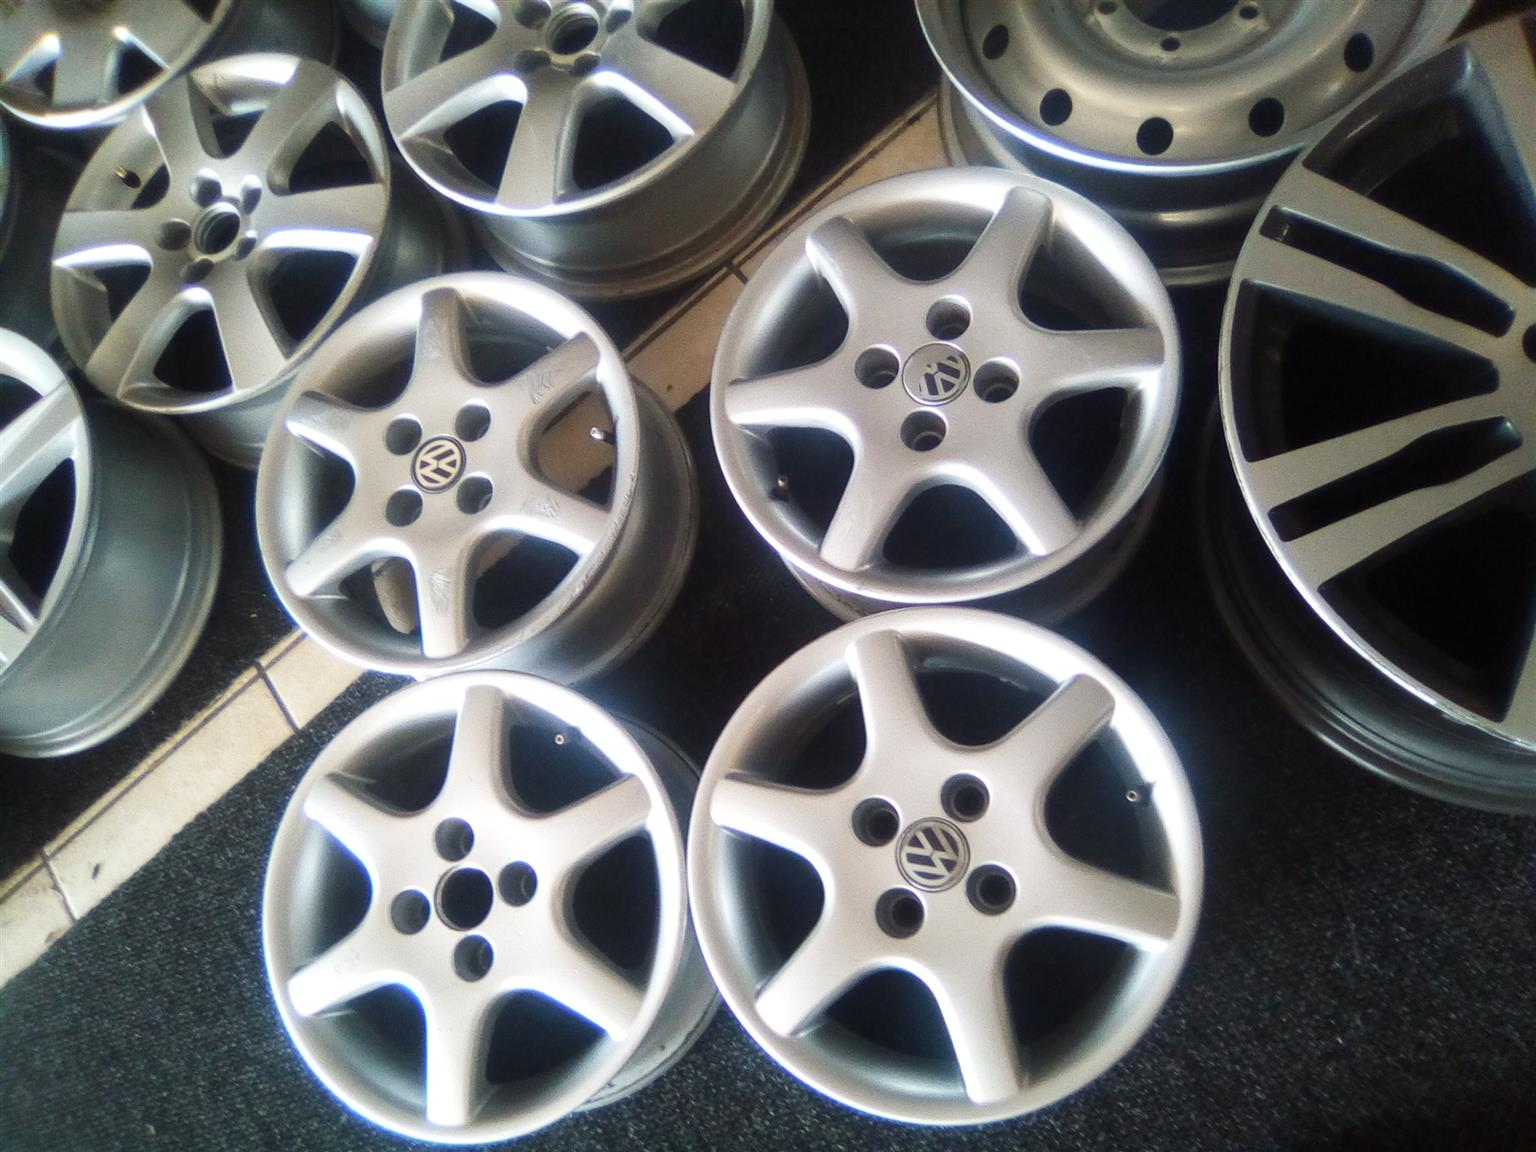 14 inch Vw mags with 4x100 pcd without tyres for R1900.